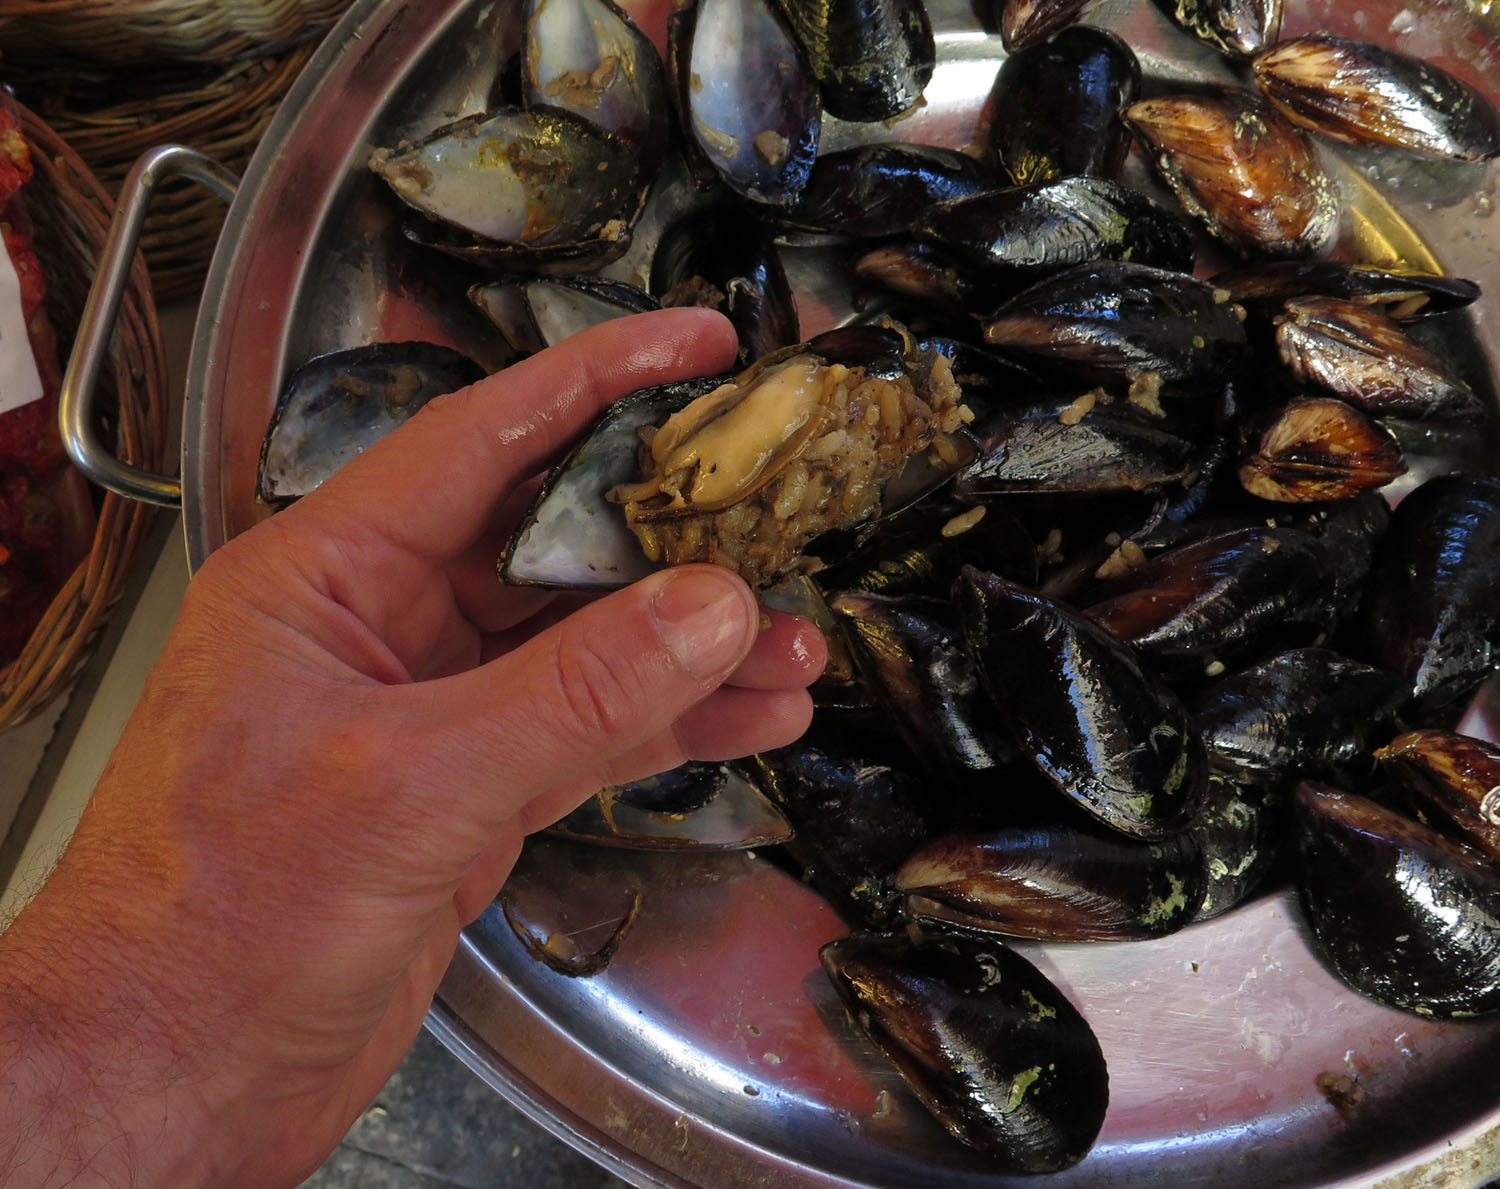 Turkey-Istanbul-Food-And-Drink-Mussels